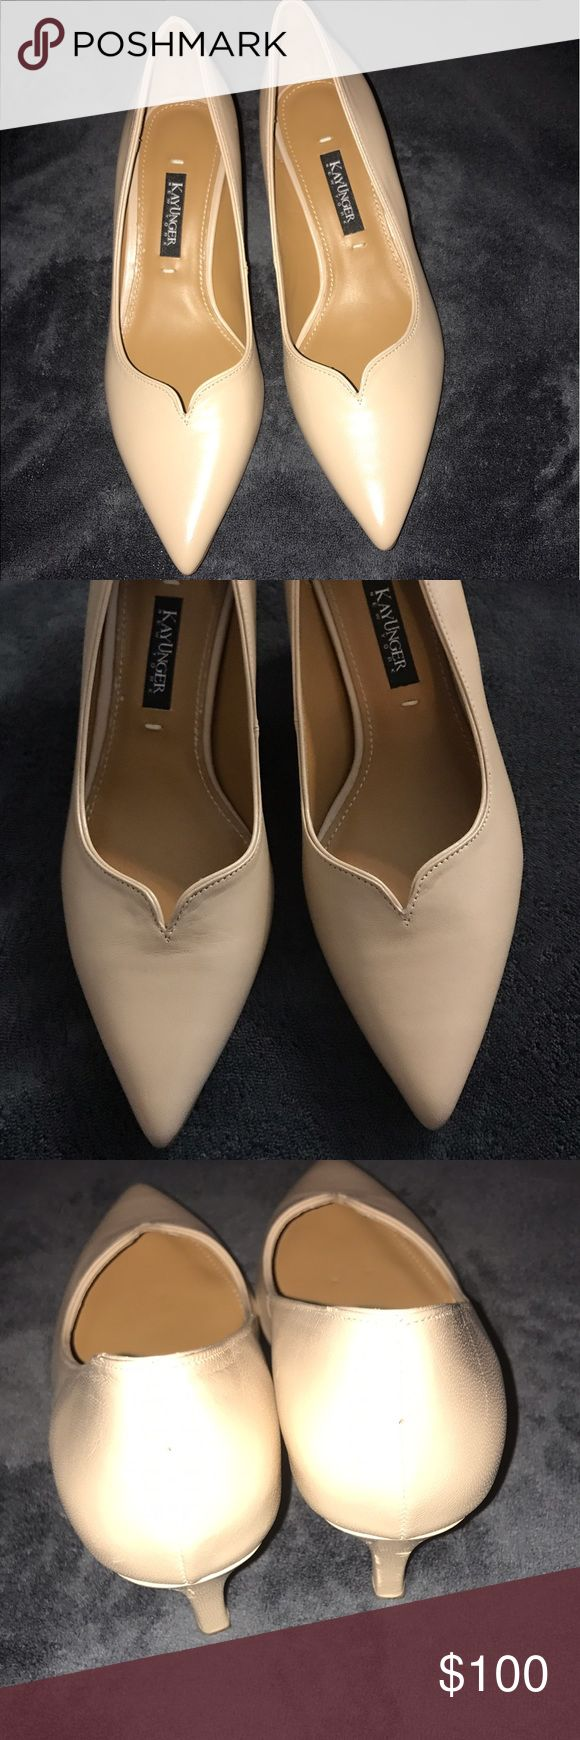 Beautiful Nude Kay Unger size 6.5 like new Beautiful Nude Kay Unger size 6.5 like new- worn 1x for a couple hours- leather and inside is like new! Retails for 295$ on Lord and Taylor Kay Unger Shoes Heels